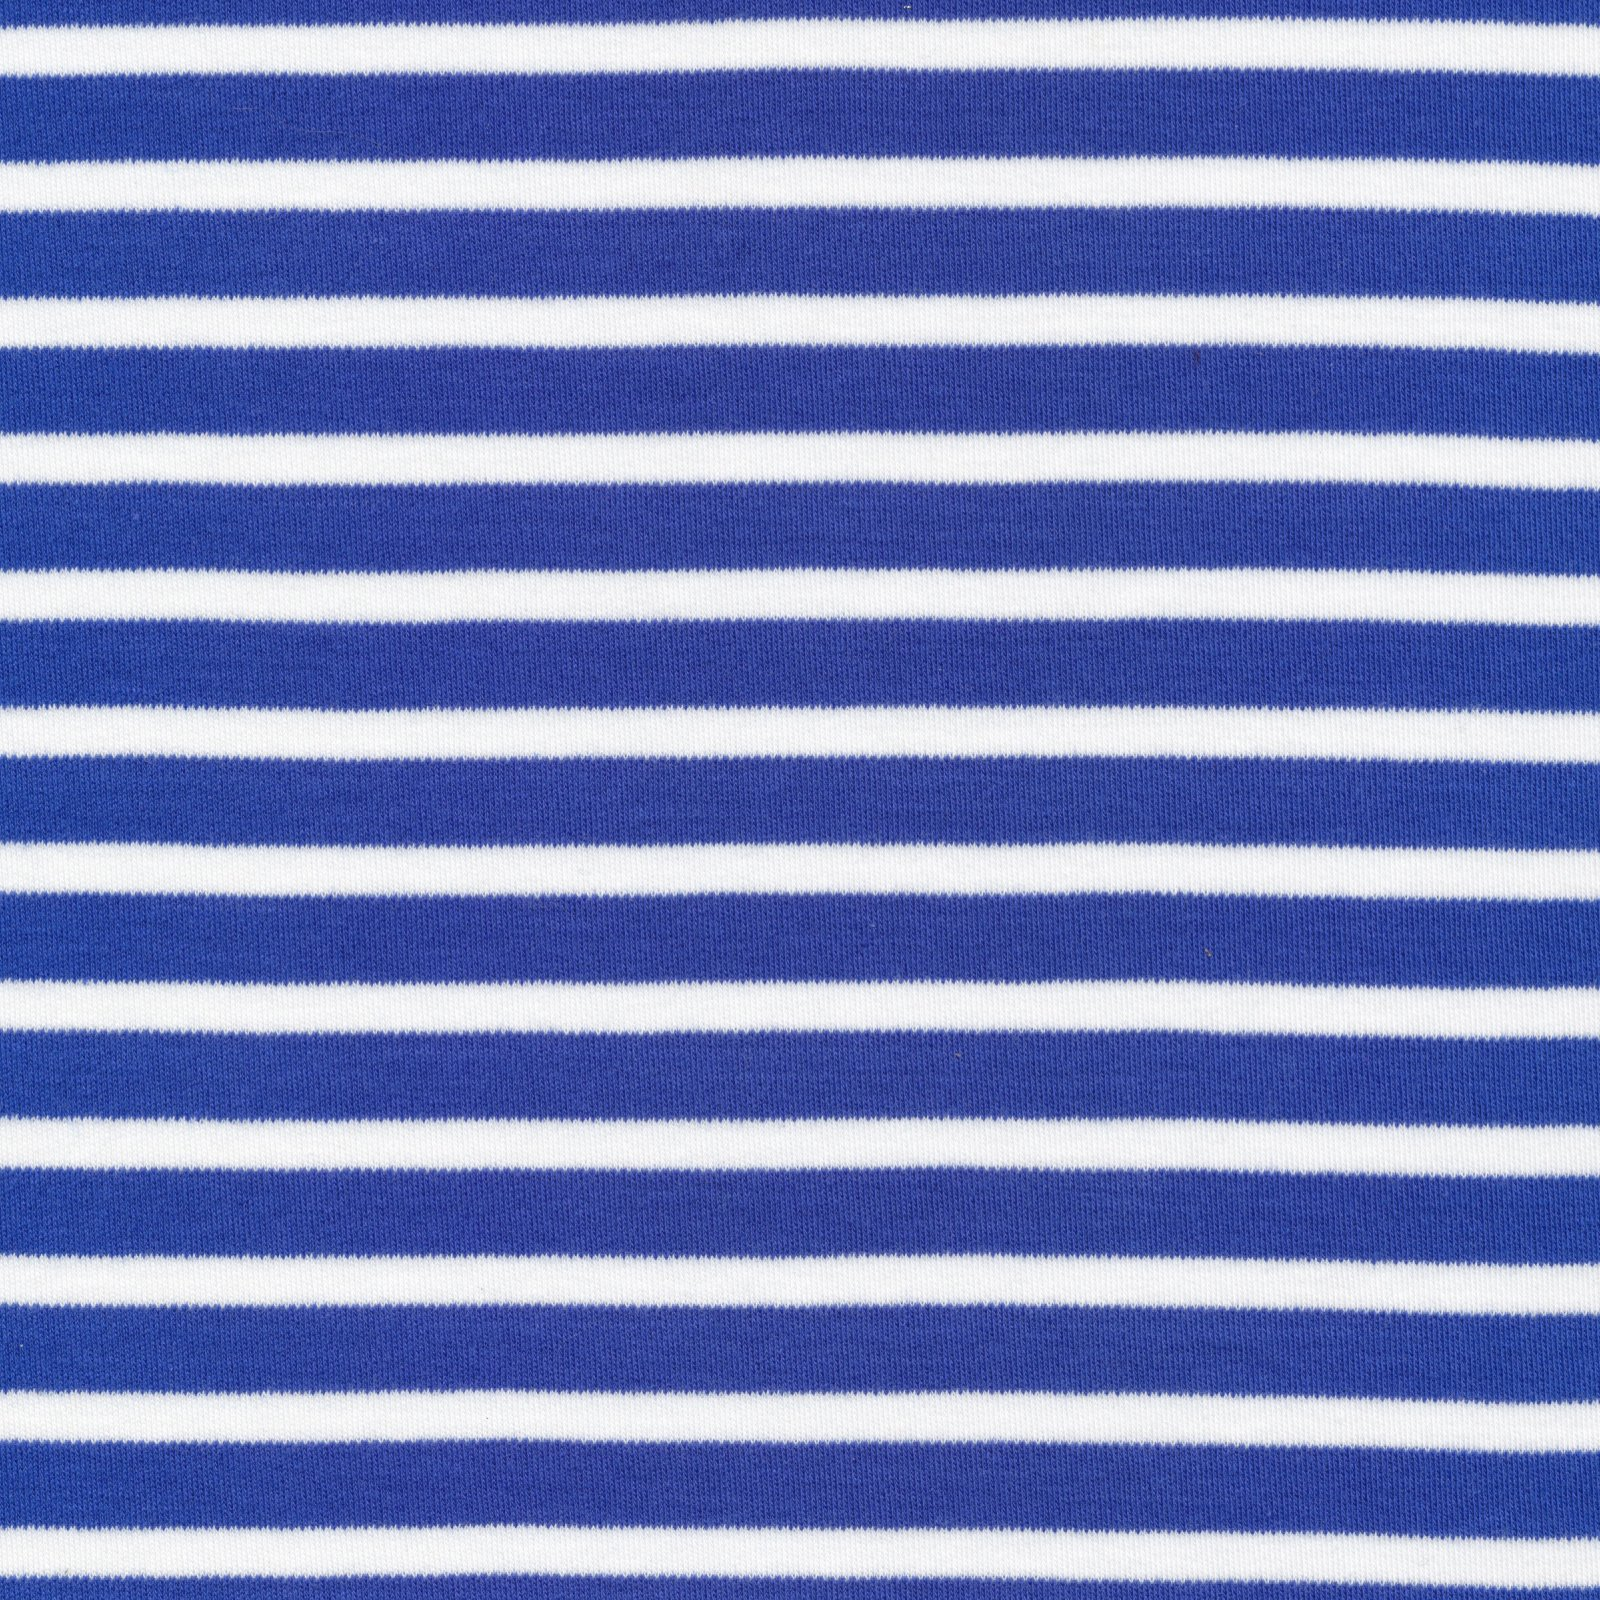 Cloud 9 - Organic Cotton Interlock - Colorful Stripe - Blue